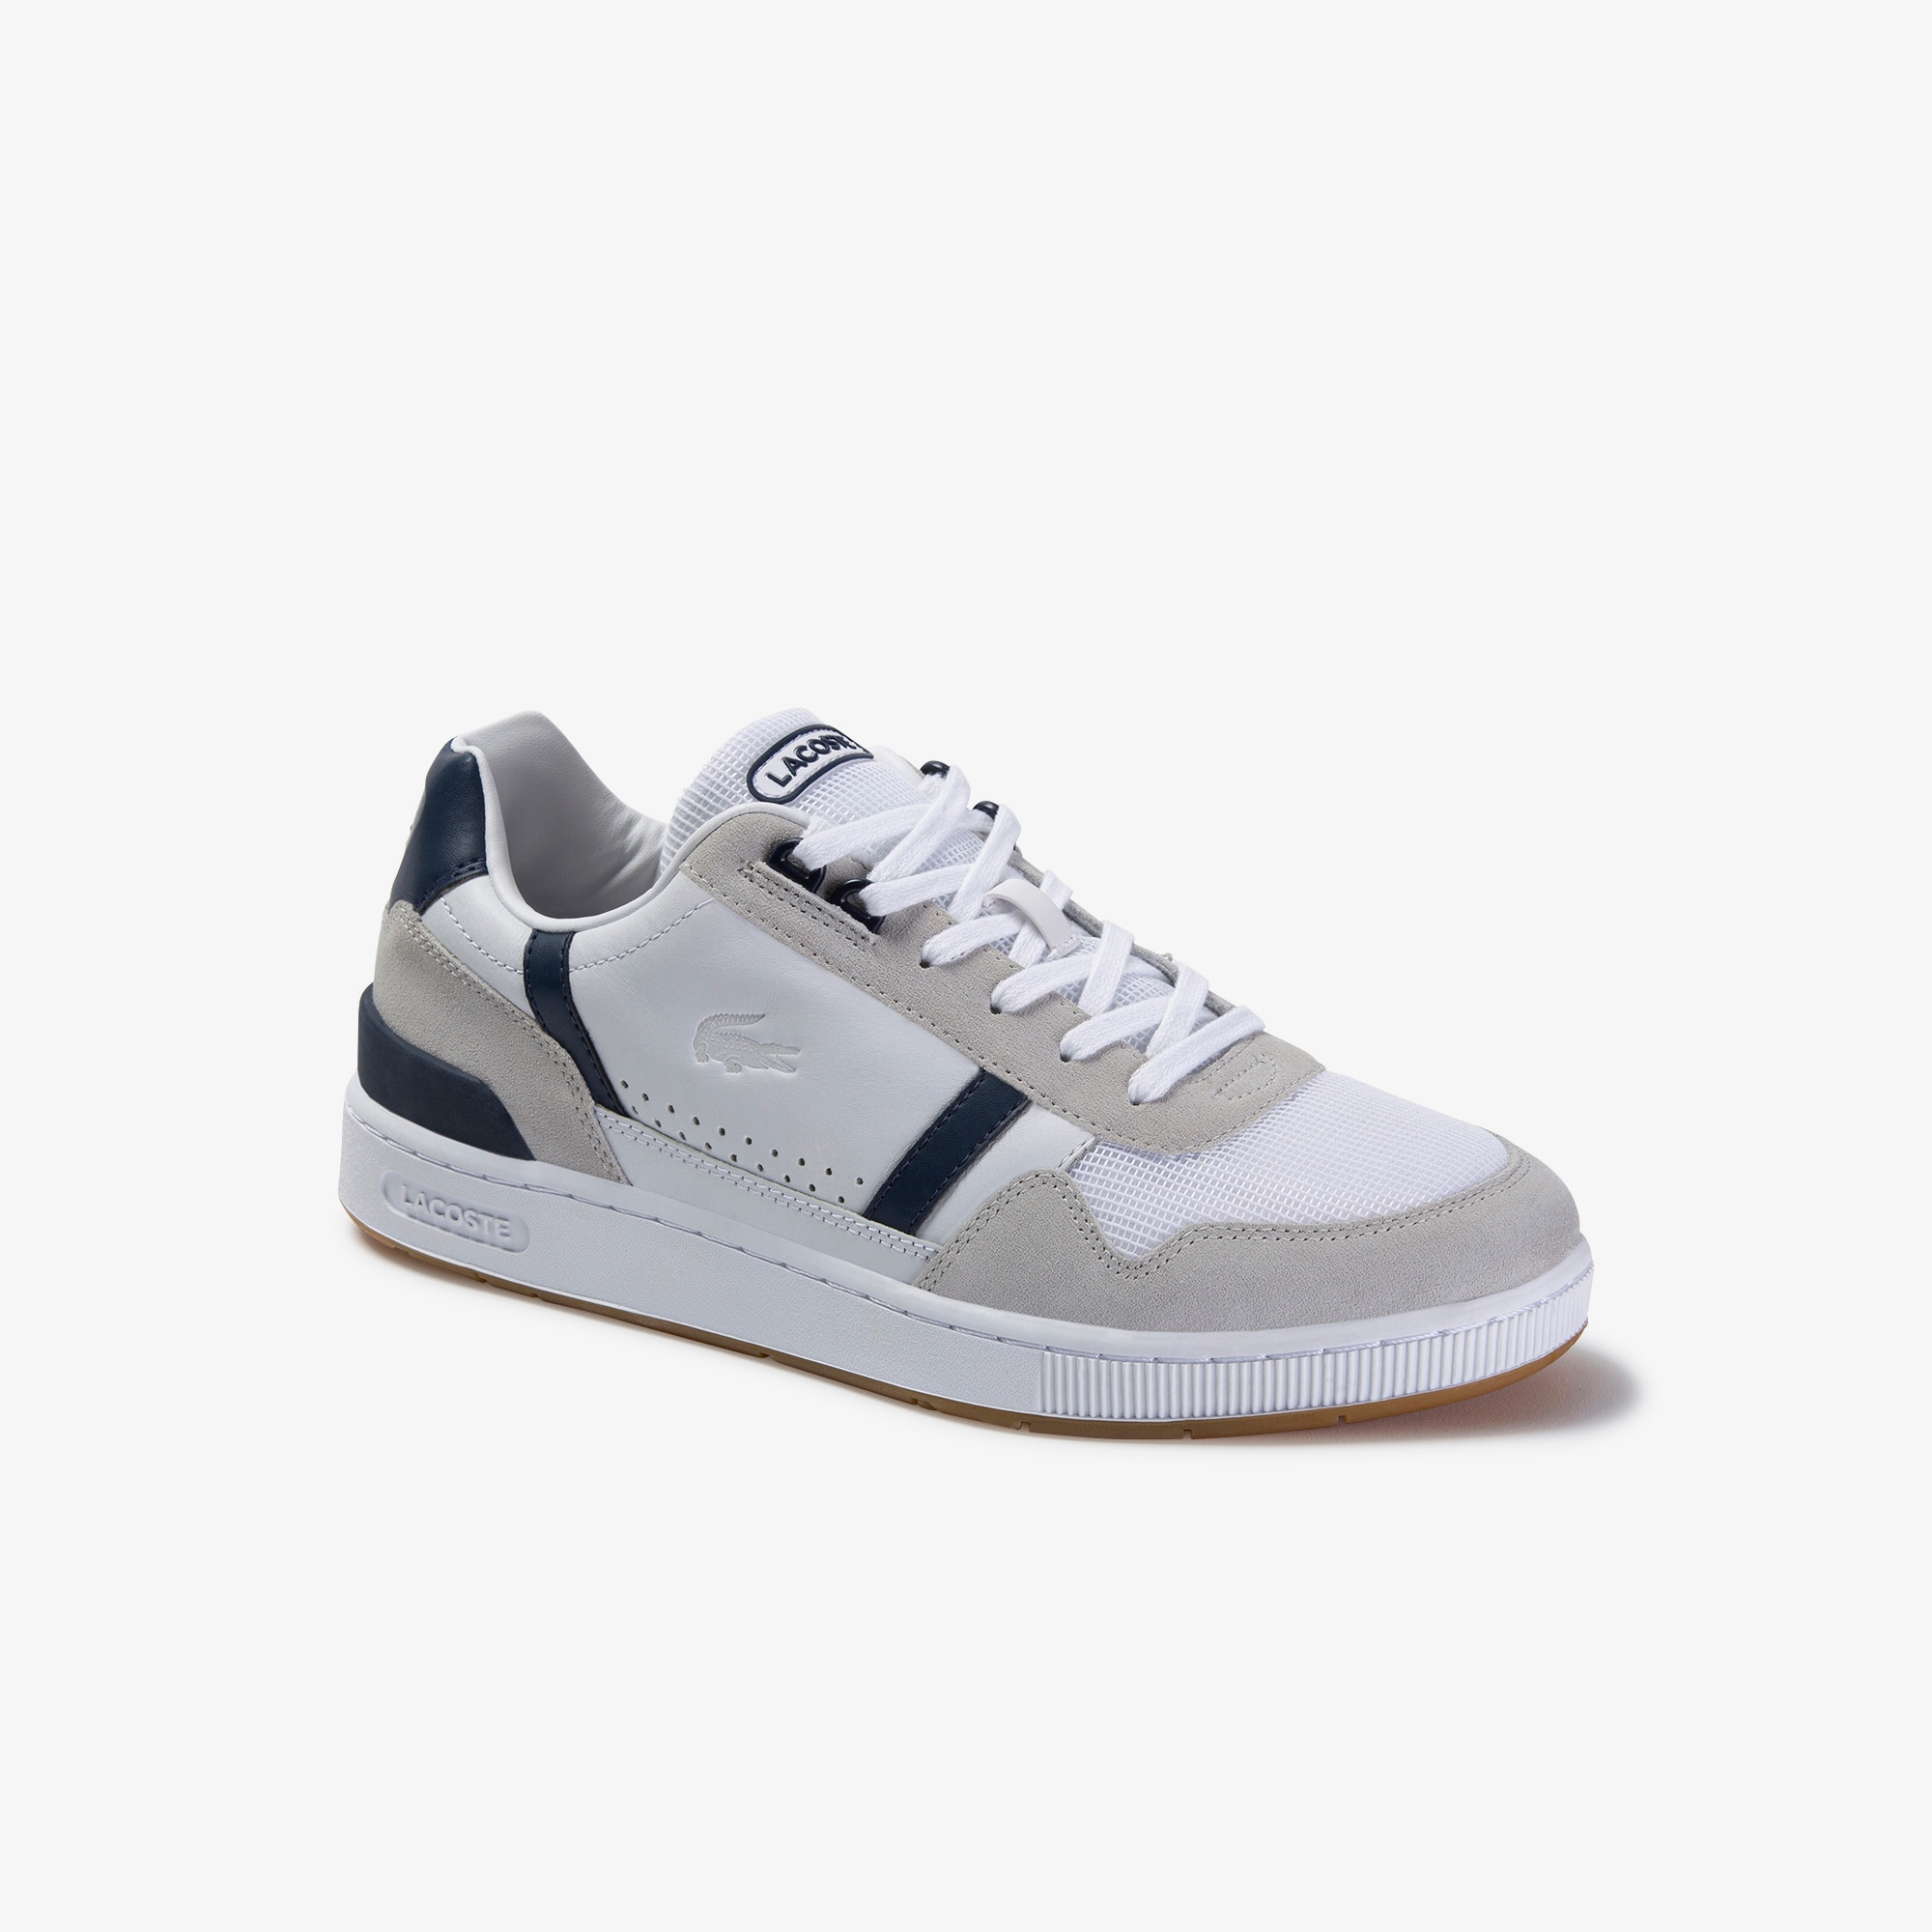 le coste trainers off 53% - www.icgst.com